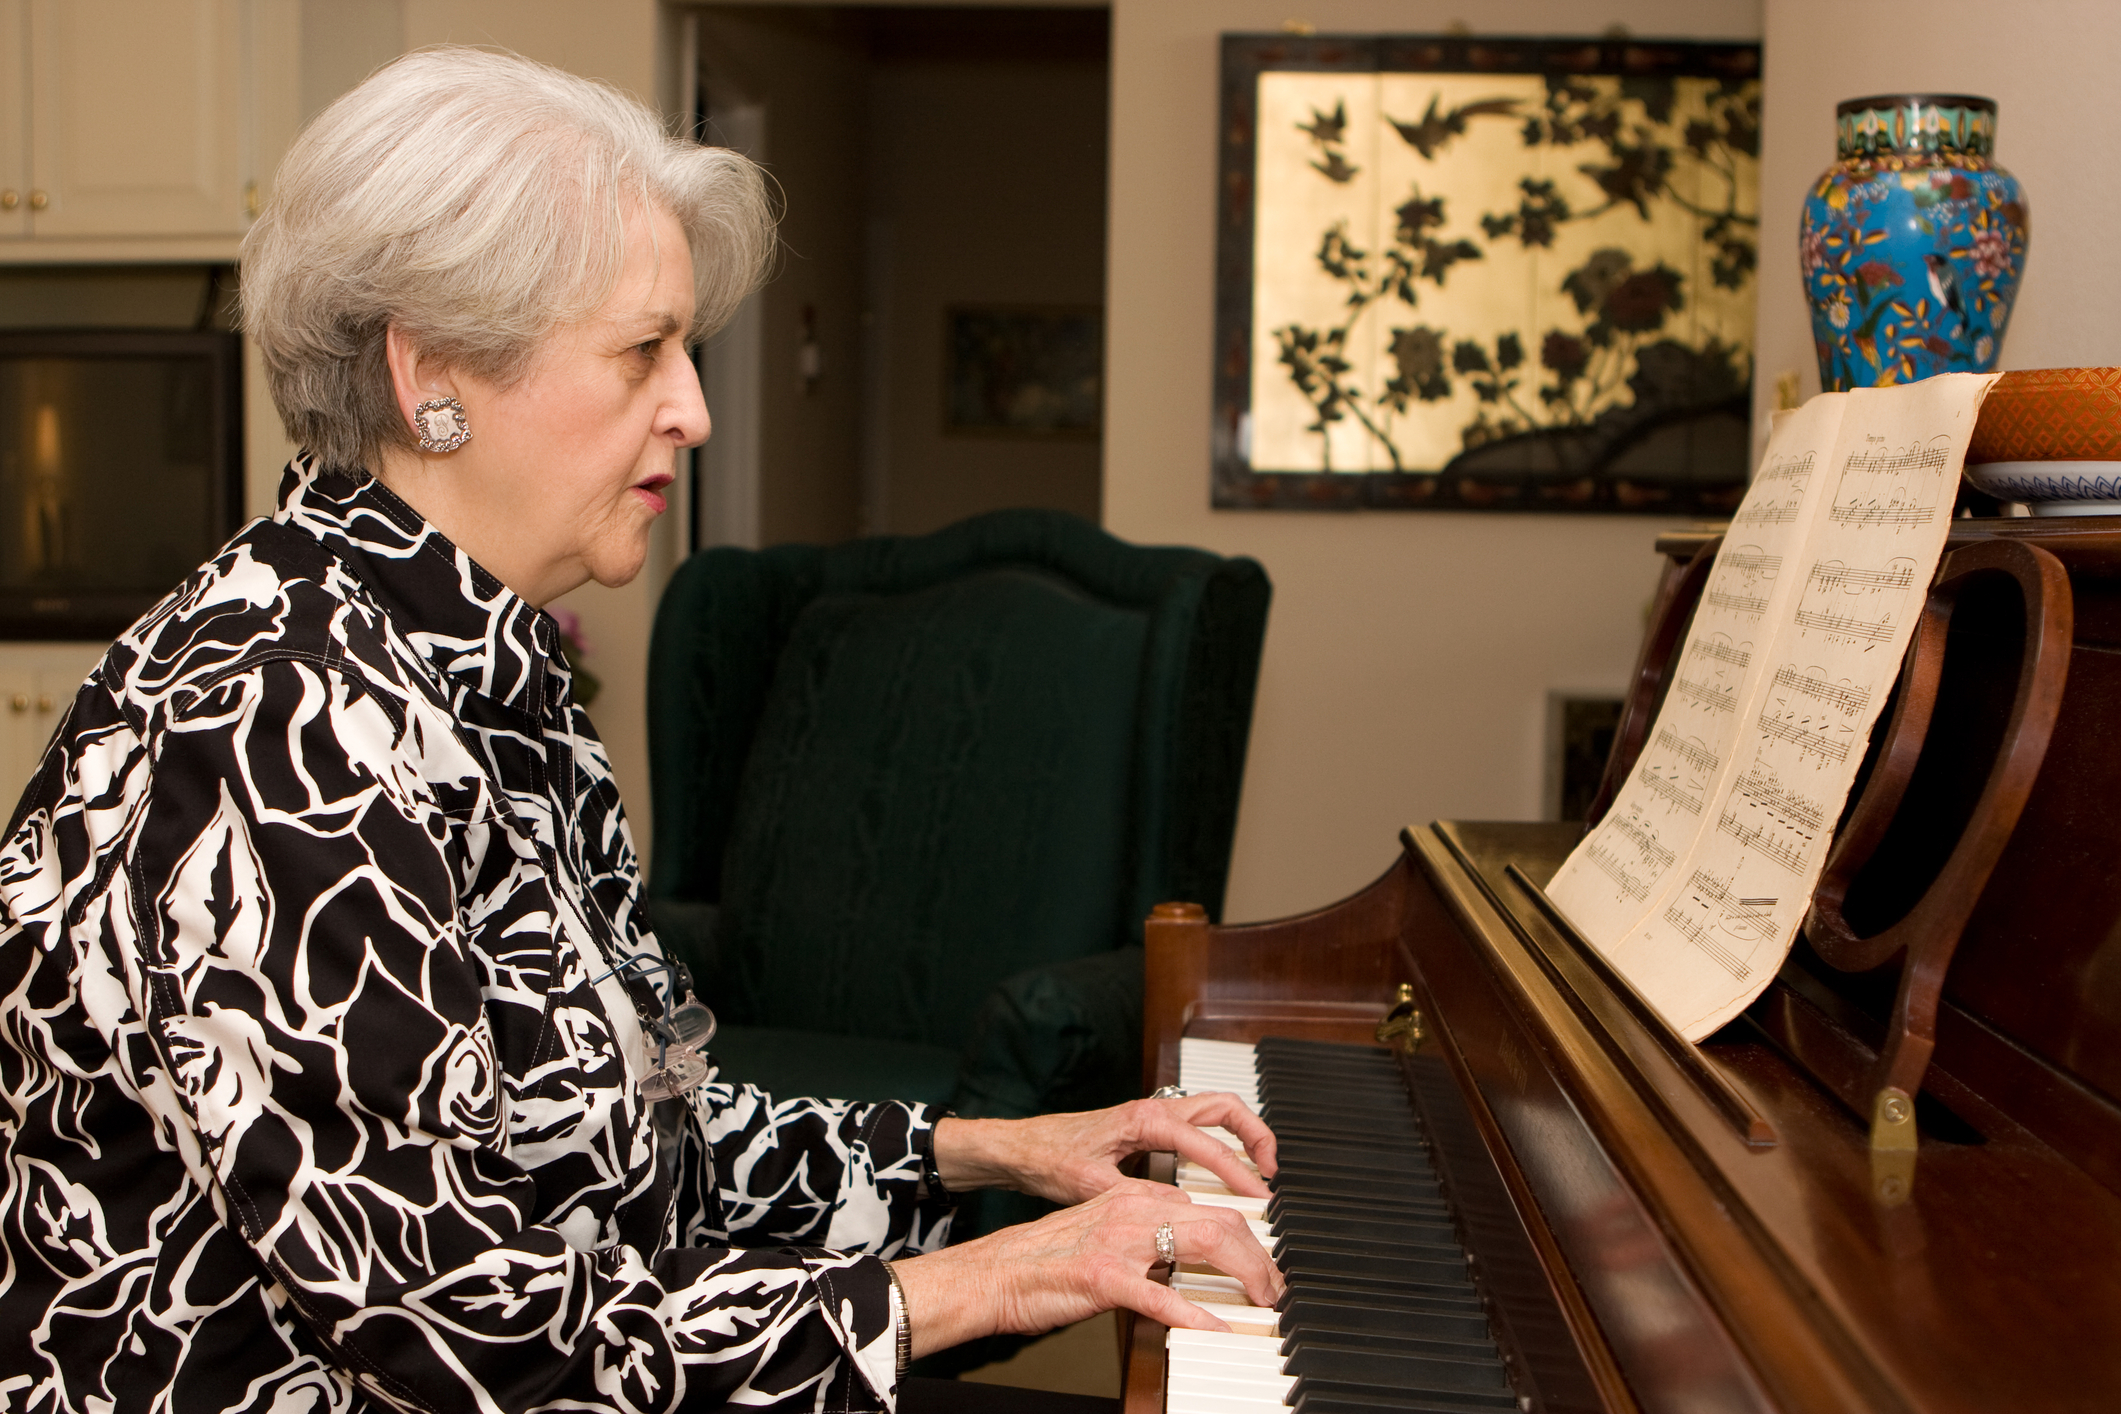 http://www.dreamstime.com/stock-photos-senior-woman-playing-piano-image11729183